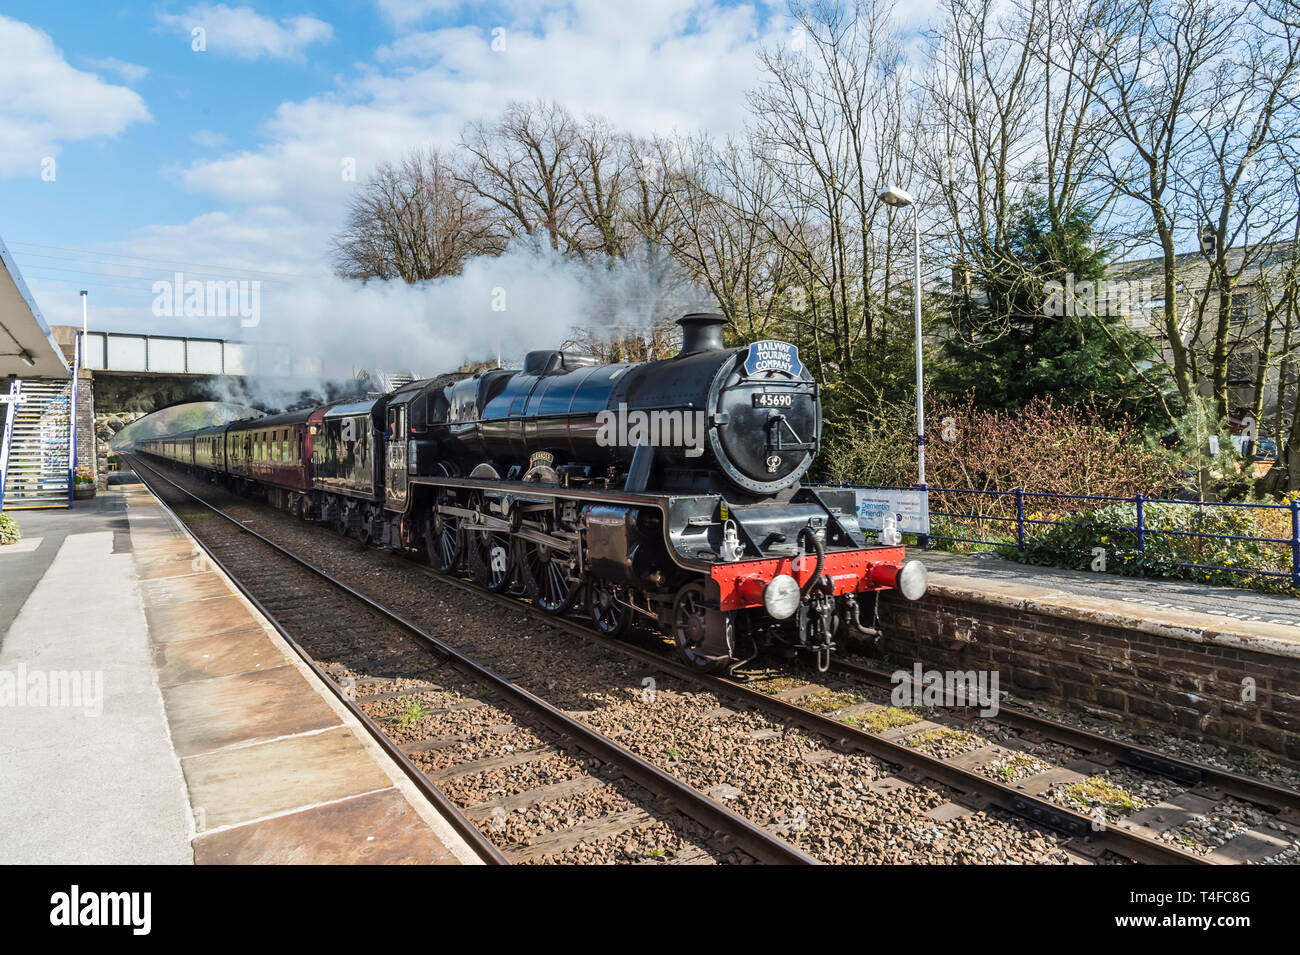 The image shows the LMS Jubilee Class 6P 4-6-0 nos 45690 Leander steam train passing through Bentham Station on the Lancaster-Leeds Line - Stock Image